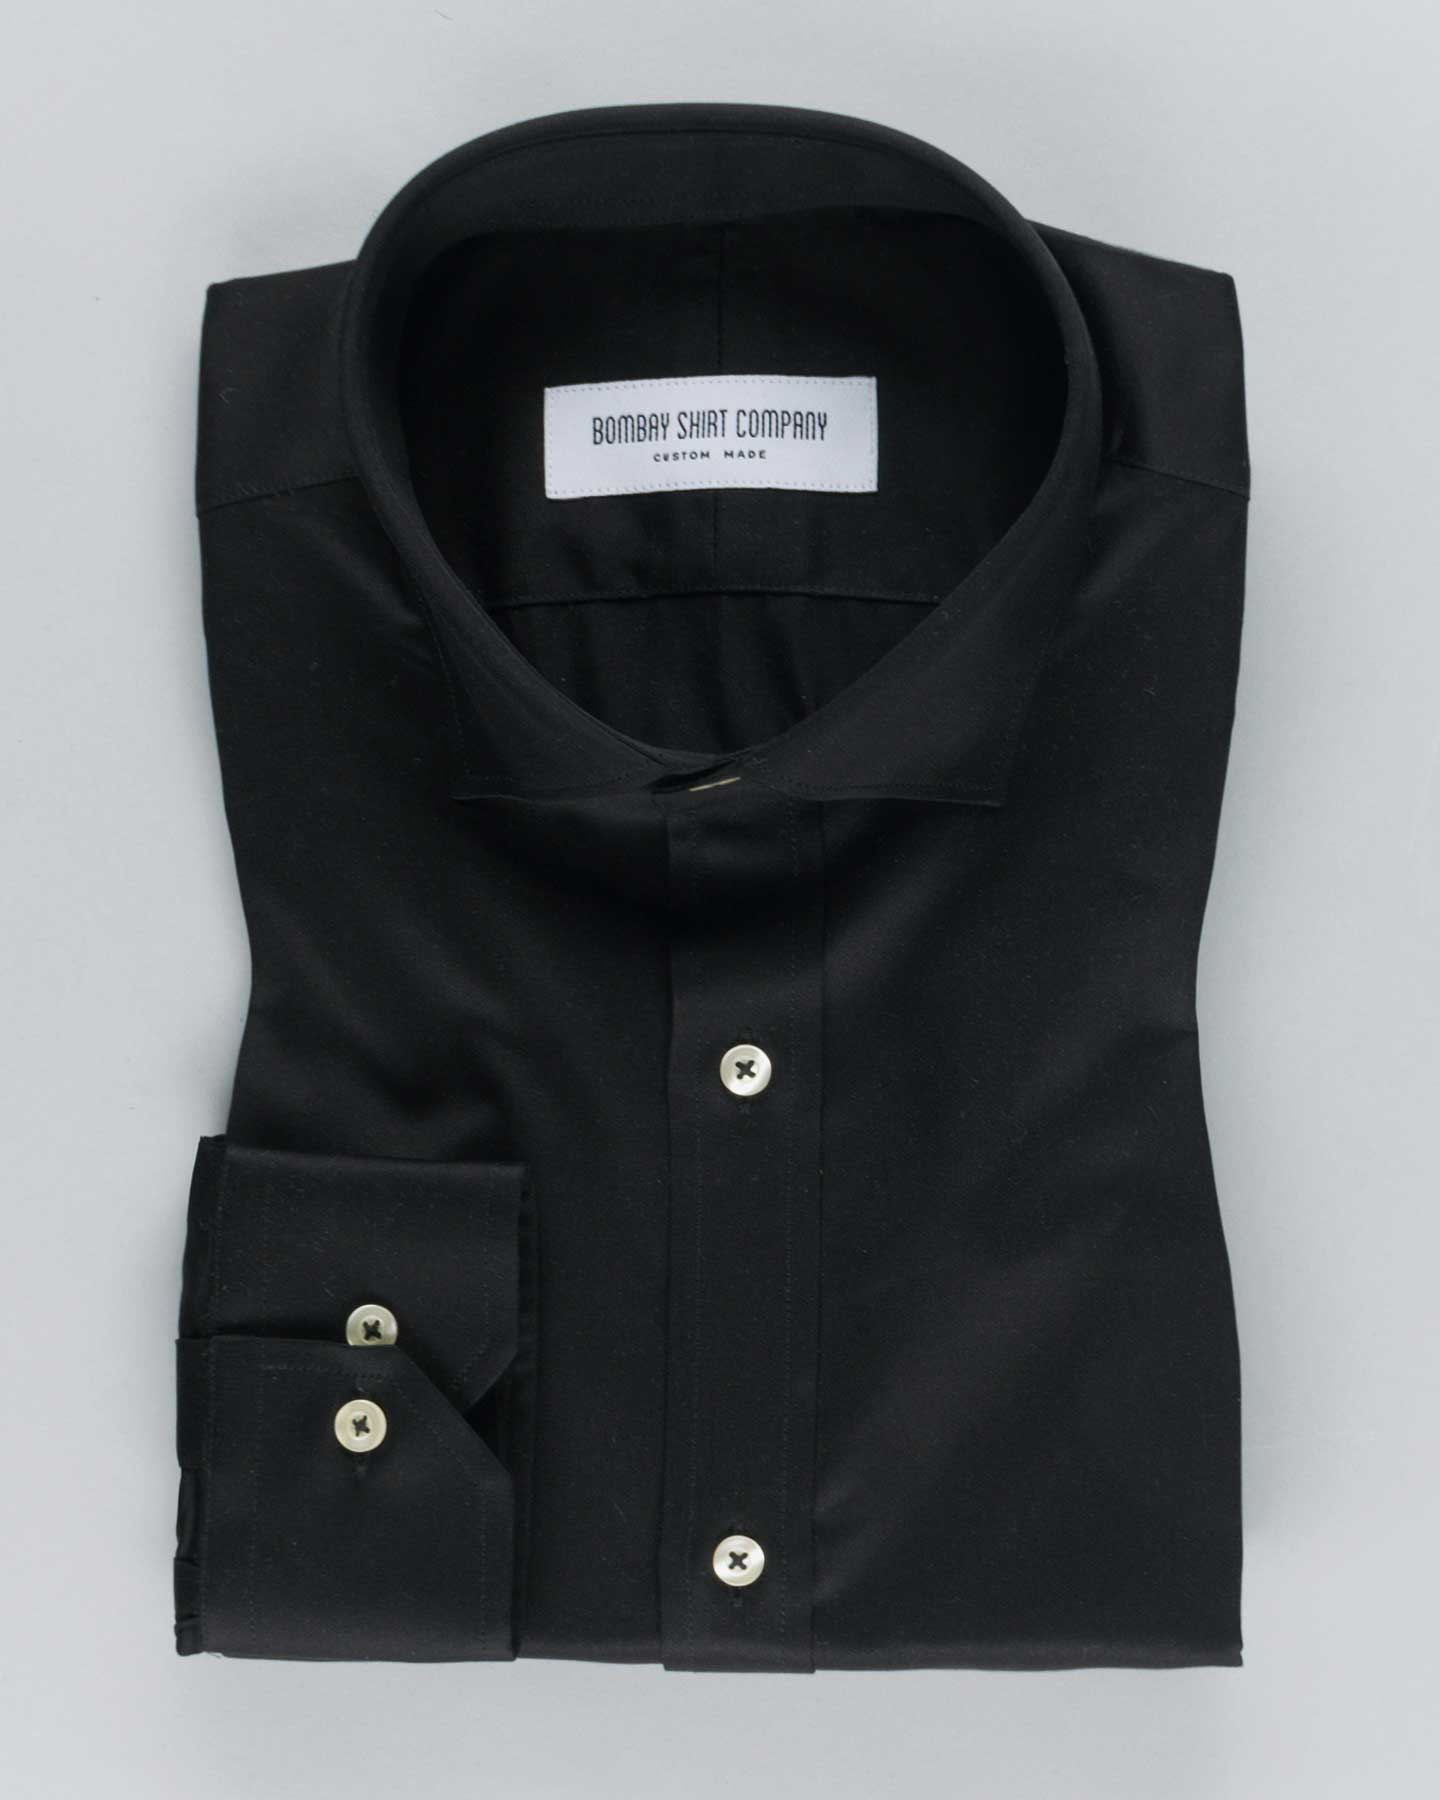 Super Black Satin Shirt